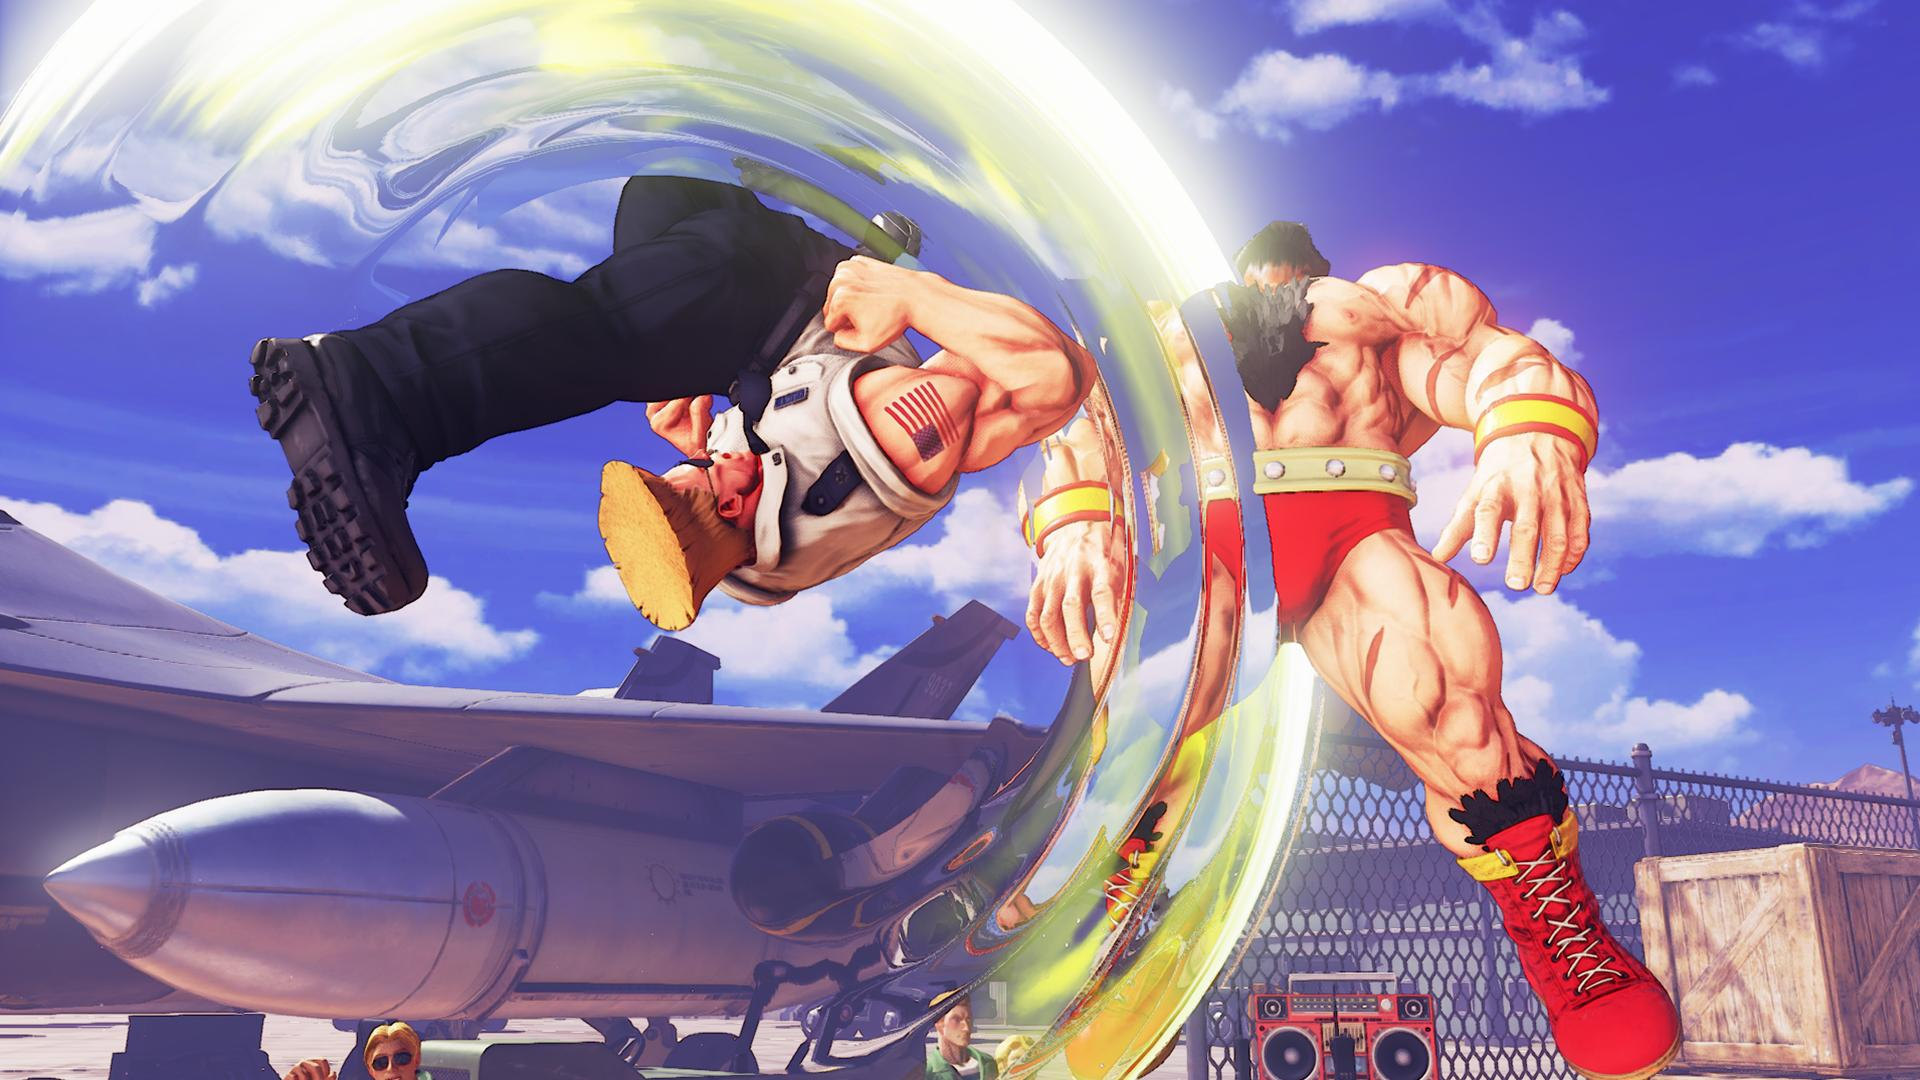 """Street Fighter V's"" Guile Release Date Revealed - Sonic Boom on April 28"